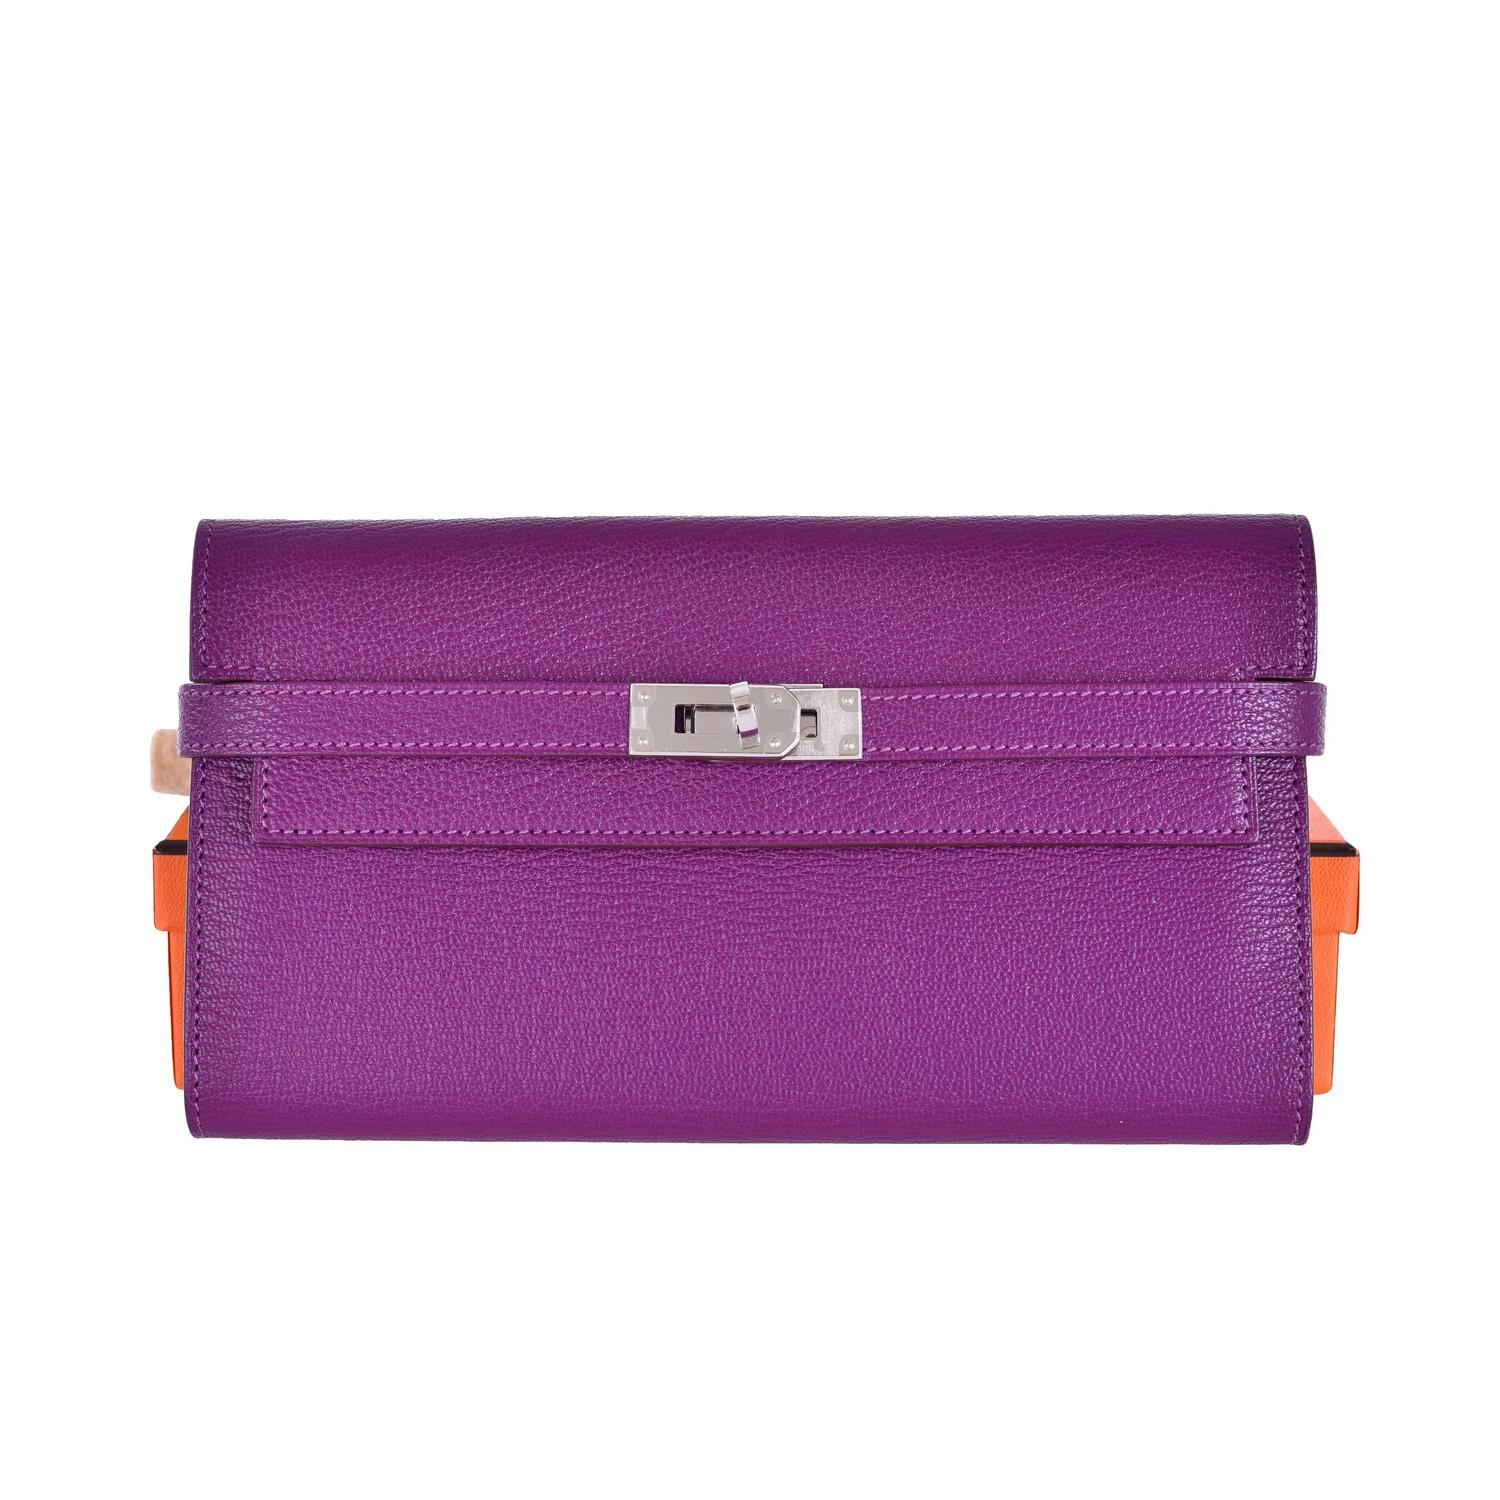 best affordable purses - NEW HERMES KELLY LONGUE WALLET ANEMONE / CLUTCH CHEVRE LEATHER ...